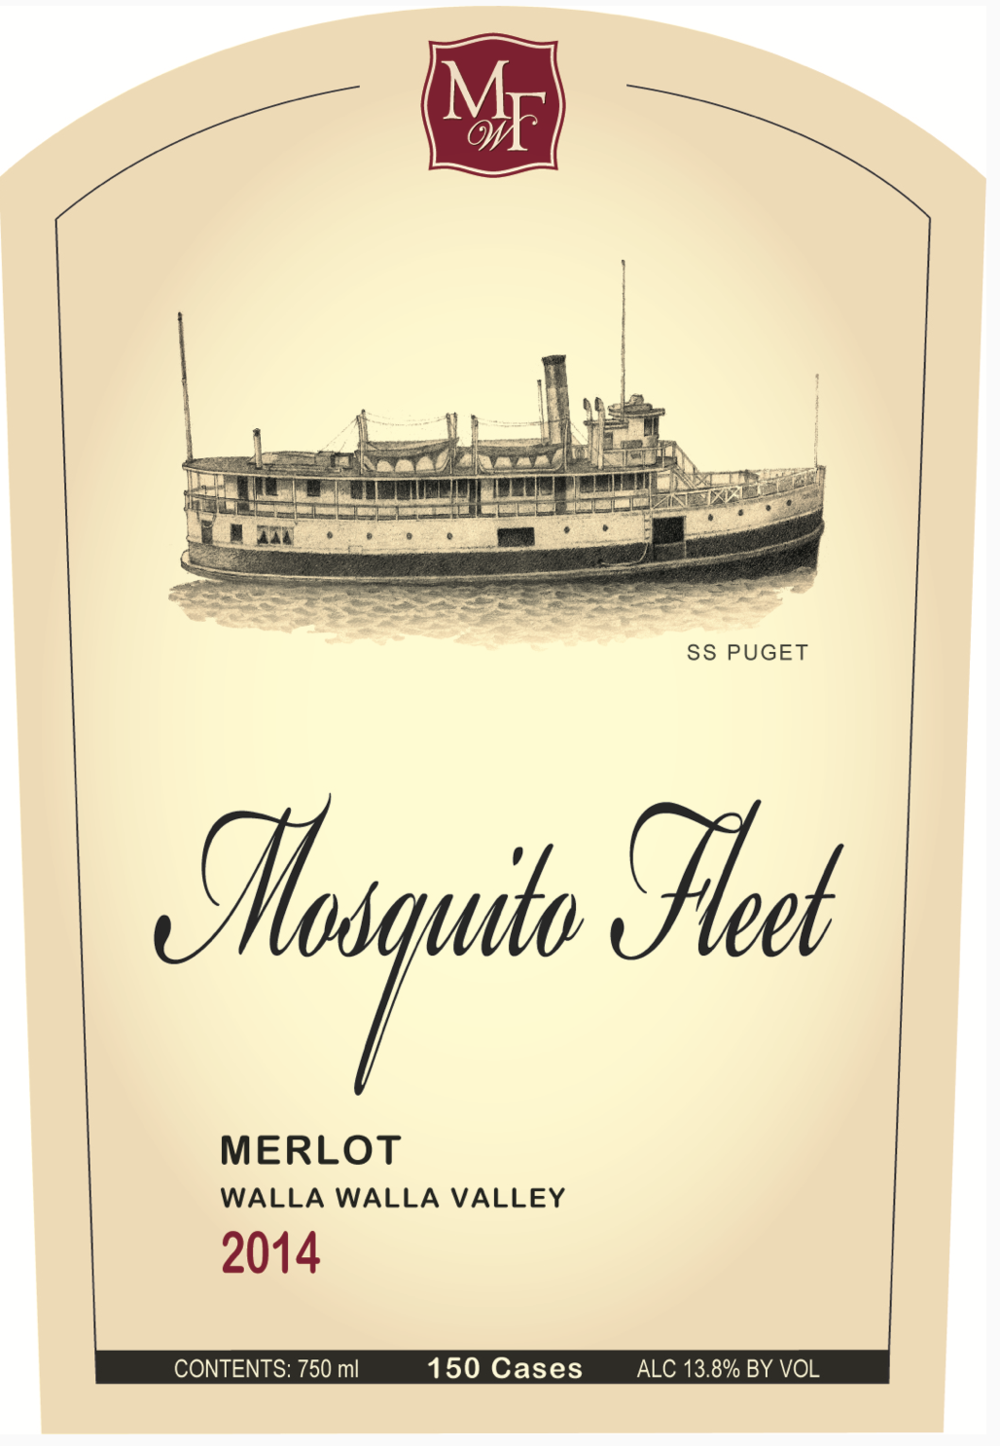 Mosquito Fleet Winery tasting room is located in Belfair WA, and is open every Saturday 12-5 PM and Sunday 12-4 PM.